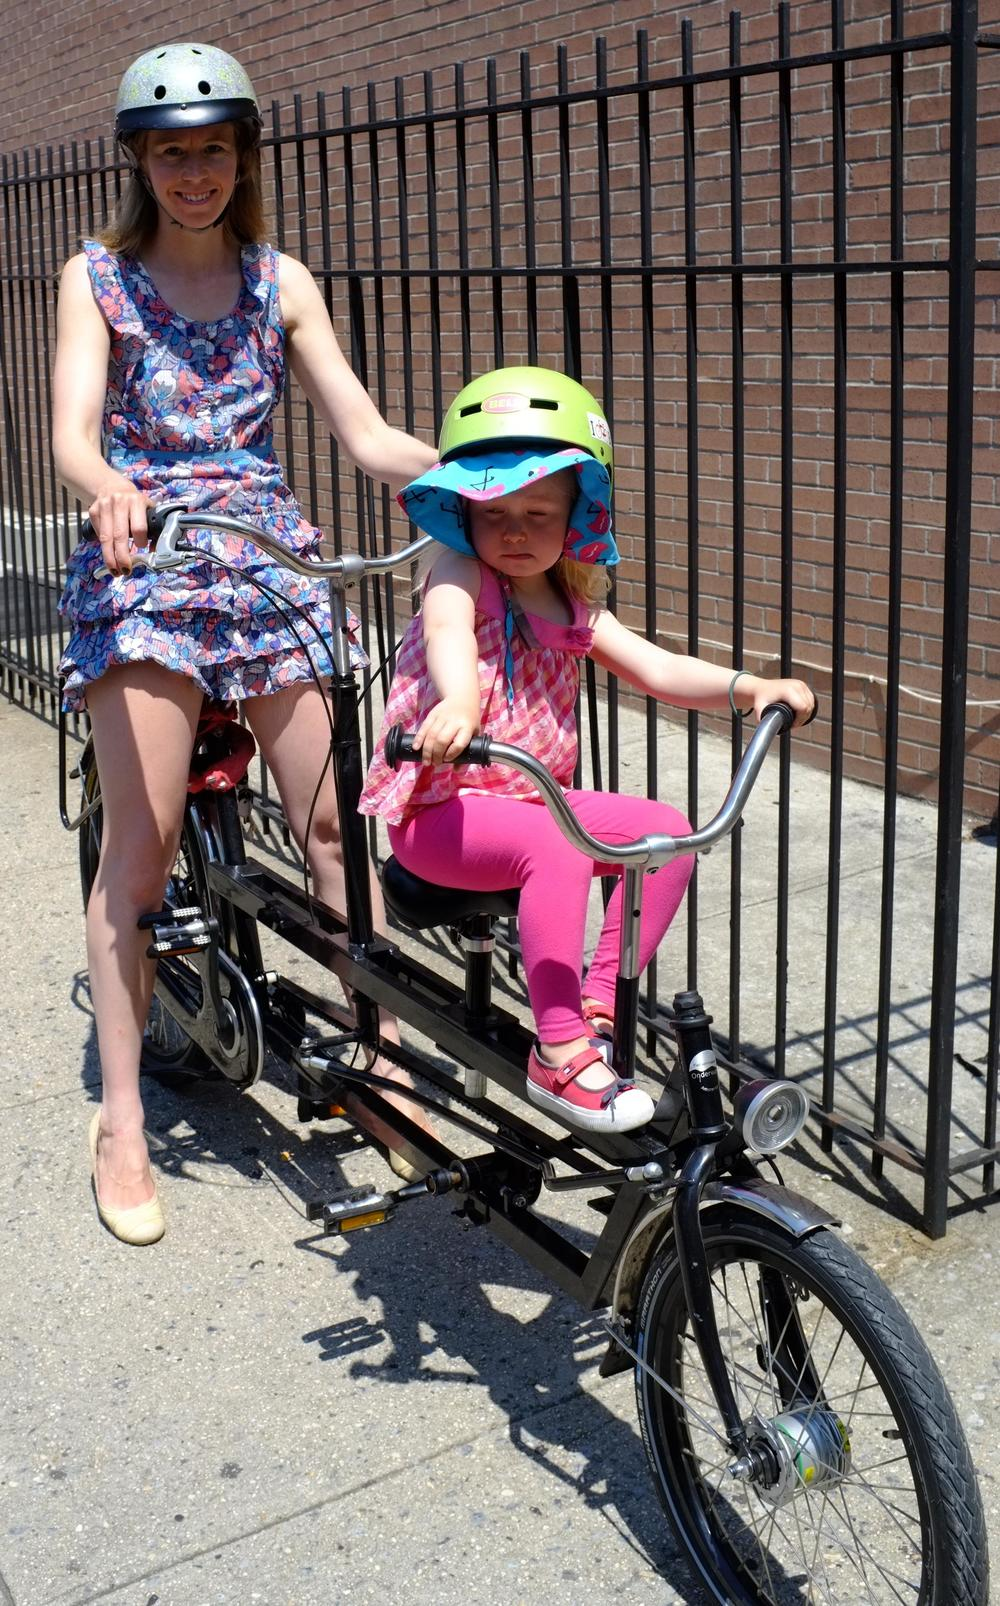 c'mon, you know you've always wanted to ride an Onderwater family tandem. And now you can, courtesy of Rolling Orange rentals in Brooklyn!